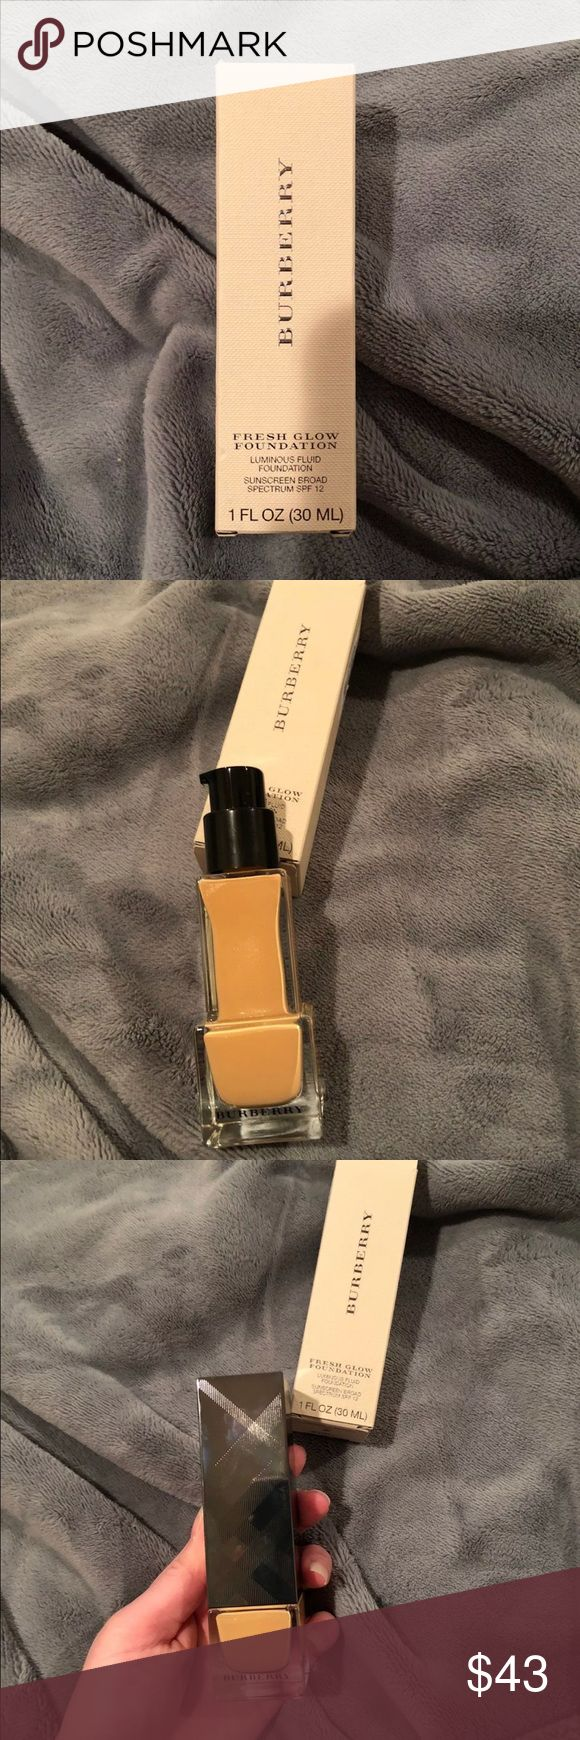 """Brand new Burberry Fresh Glow Foundation BRAND NEW NEVER USED Burberry Fresh Glow Foundation in shade """"Rosy Nude"""". Described for medium skin with rosy undertones. Originally bought for $52. Sold out on Sephora.com Burberry Makeup Foundation"""